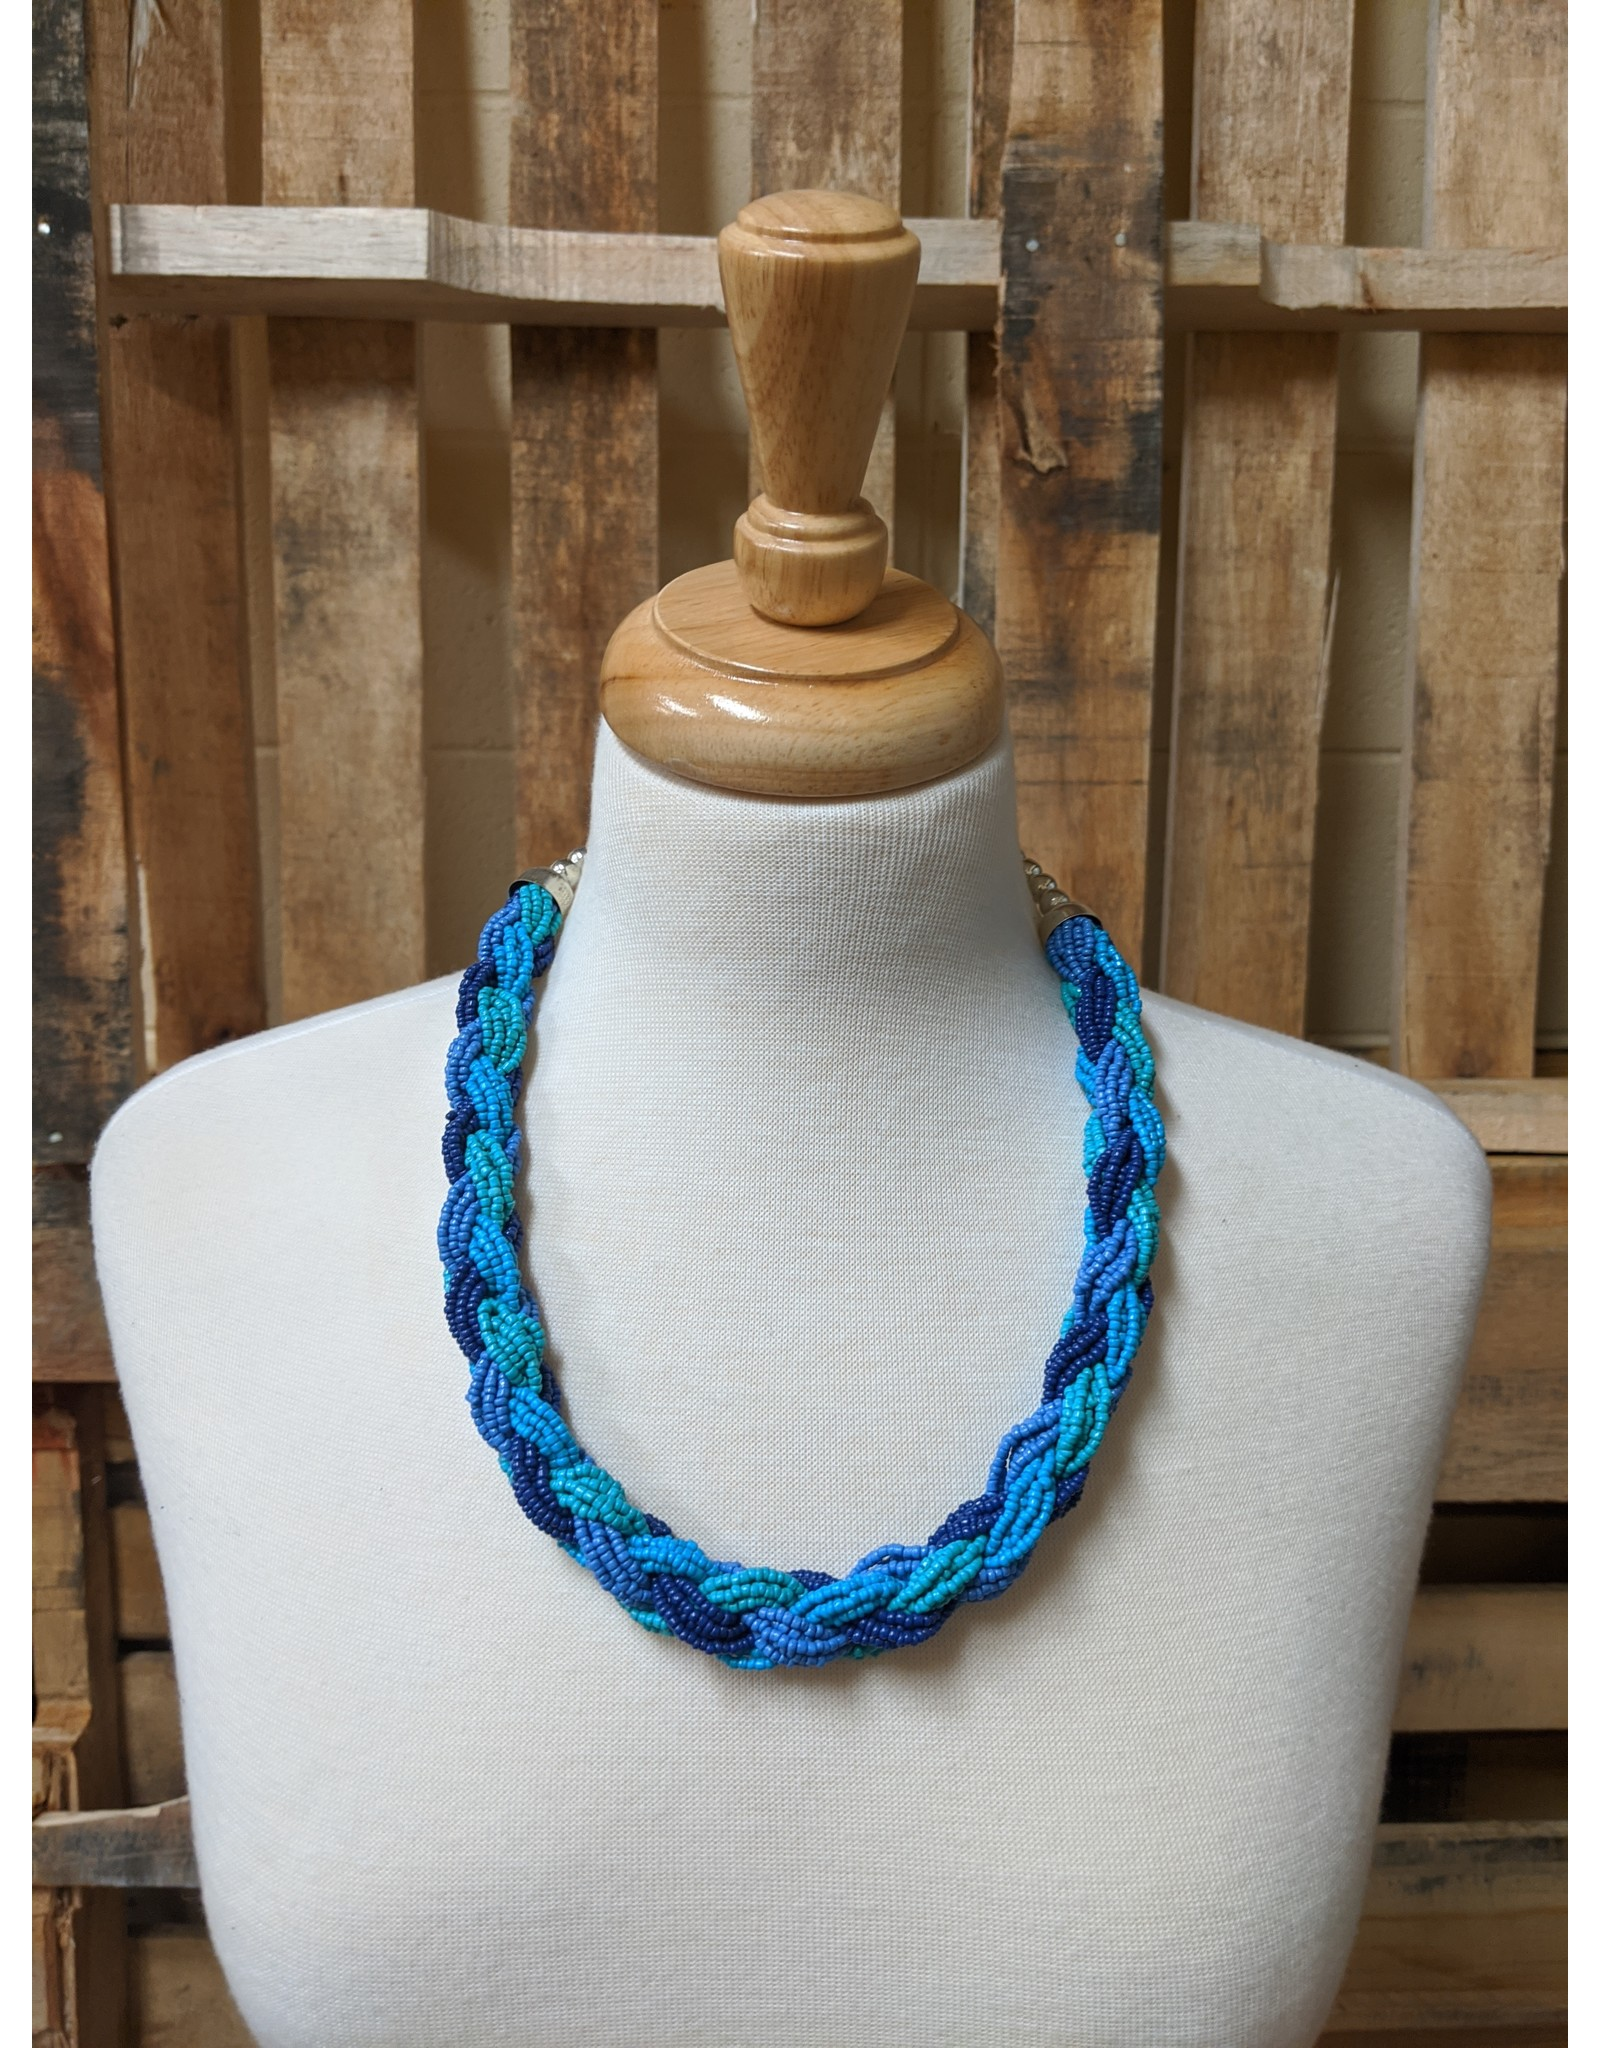 Ten Thousand Villages Blue Seed Bead Necklace